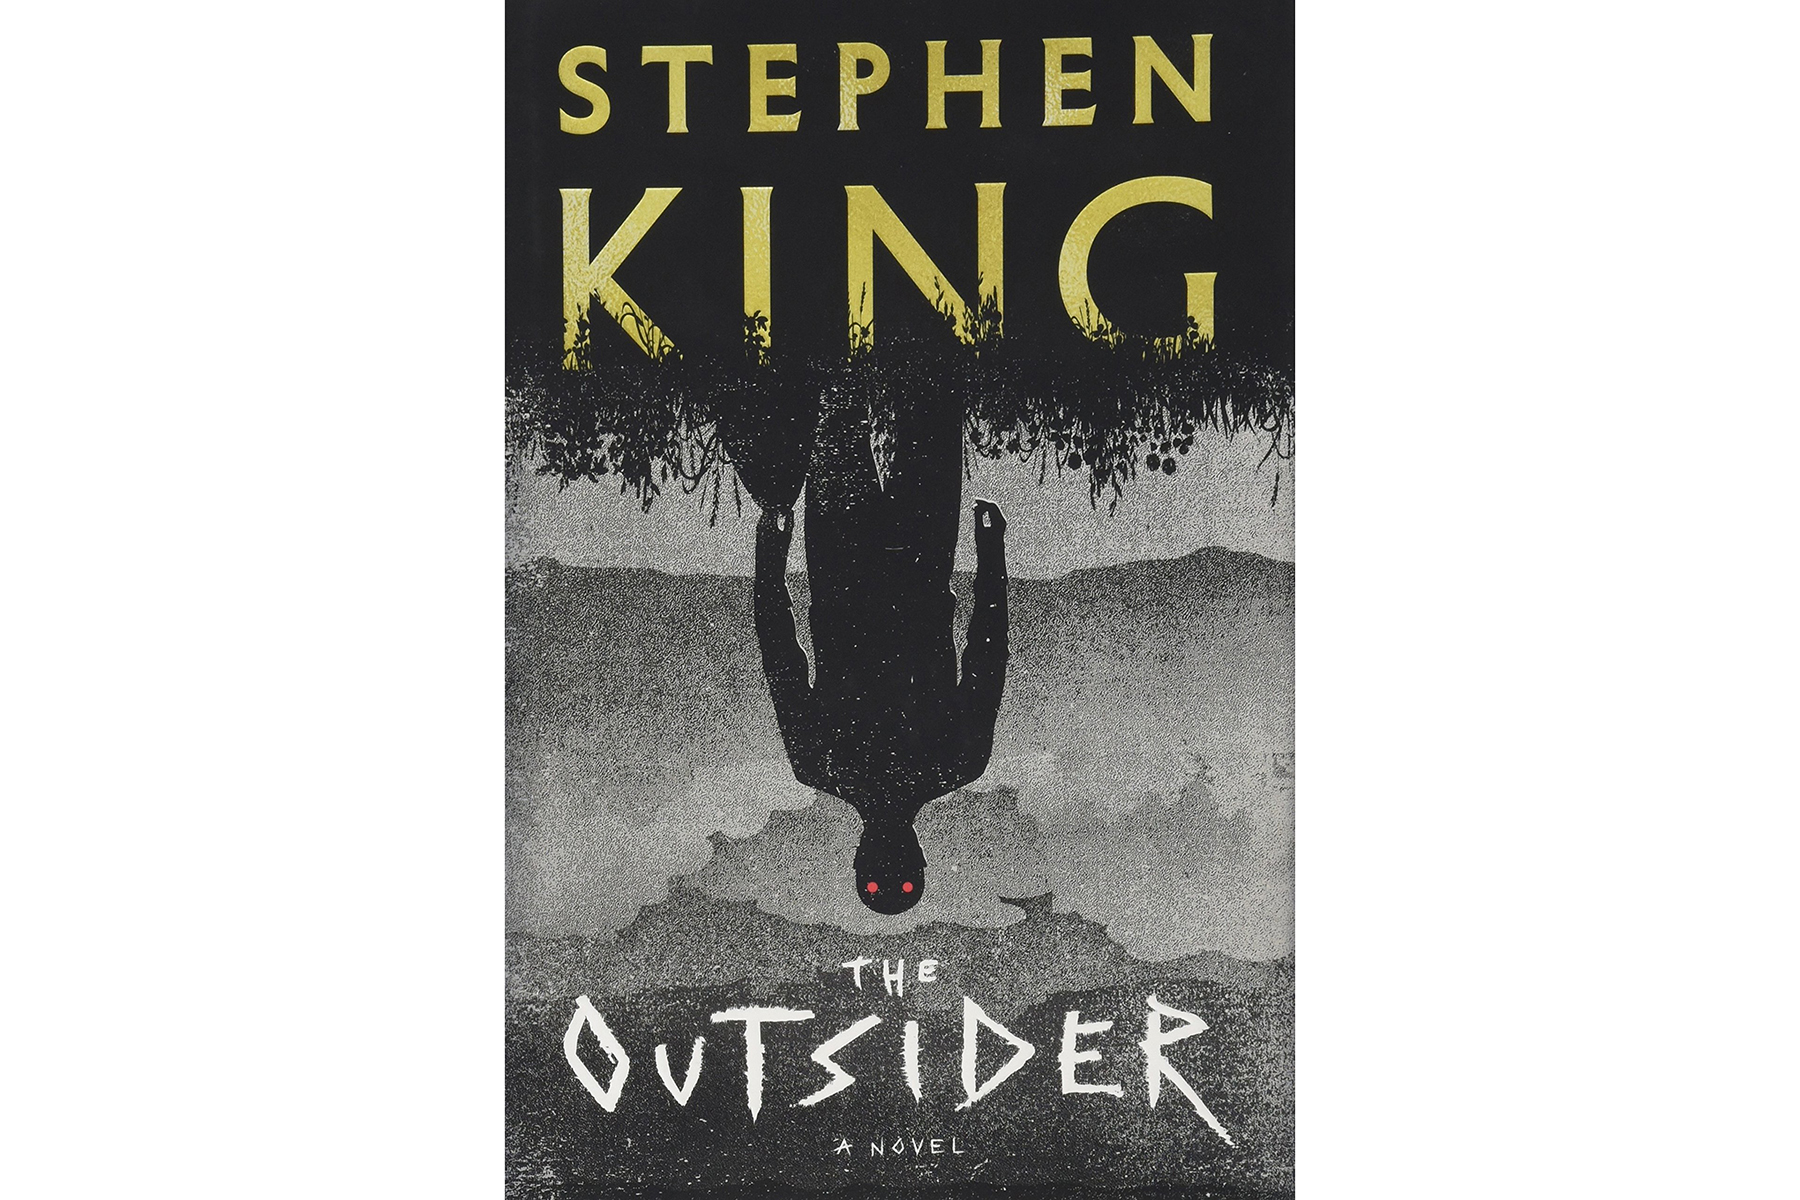 Cover of The Outsider, by Stephen King